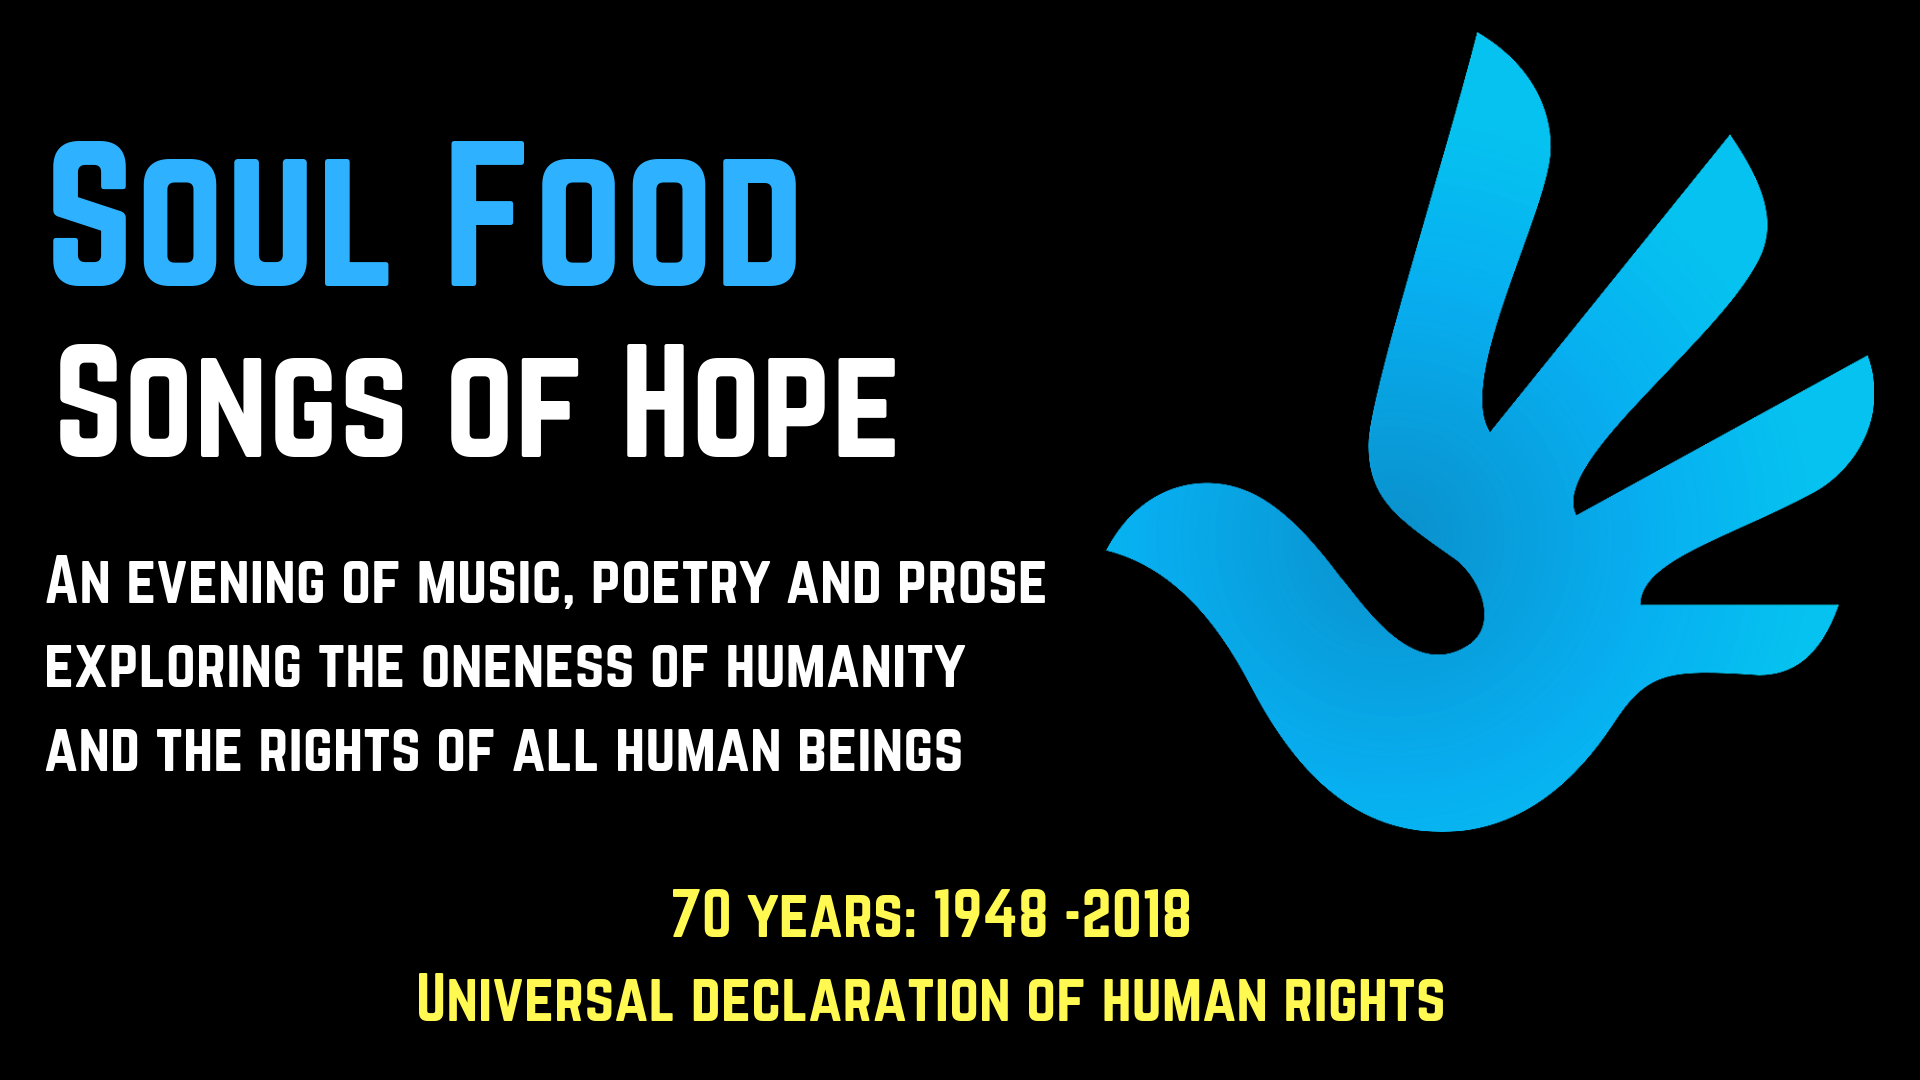 Soul Food - Songs of Hope - Universal Declaration of Human Rights